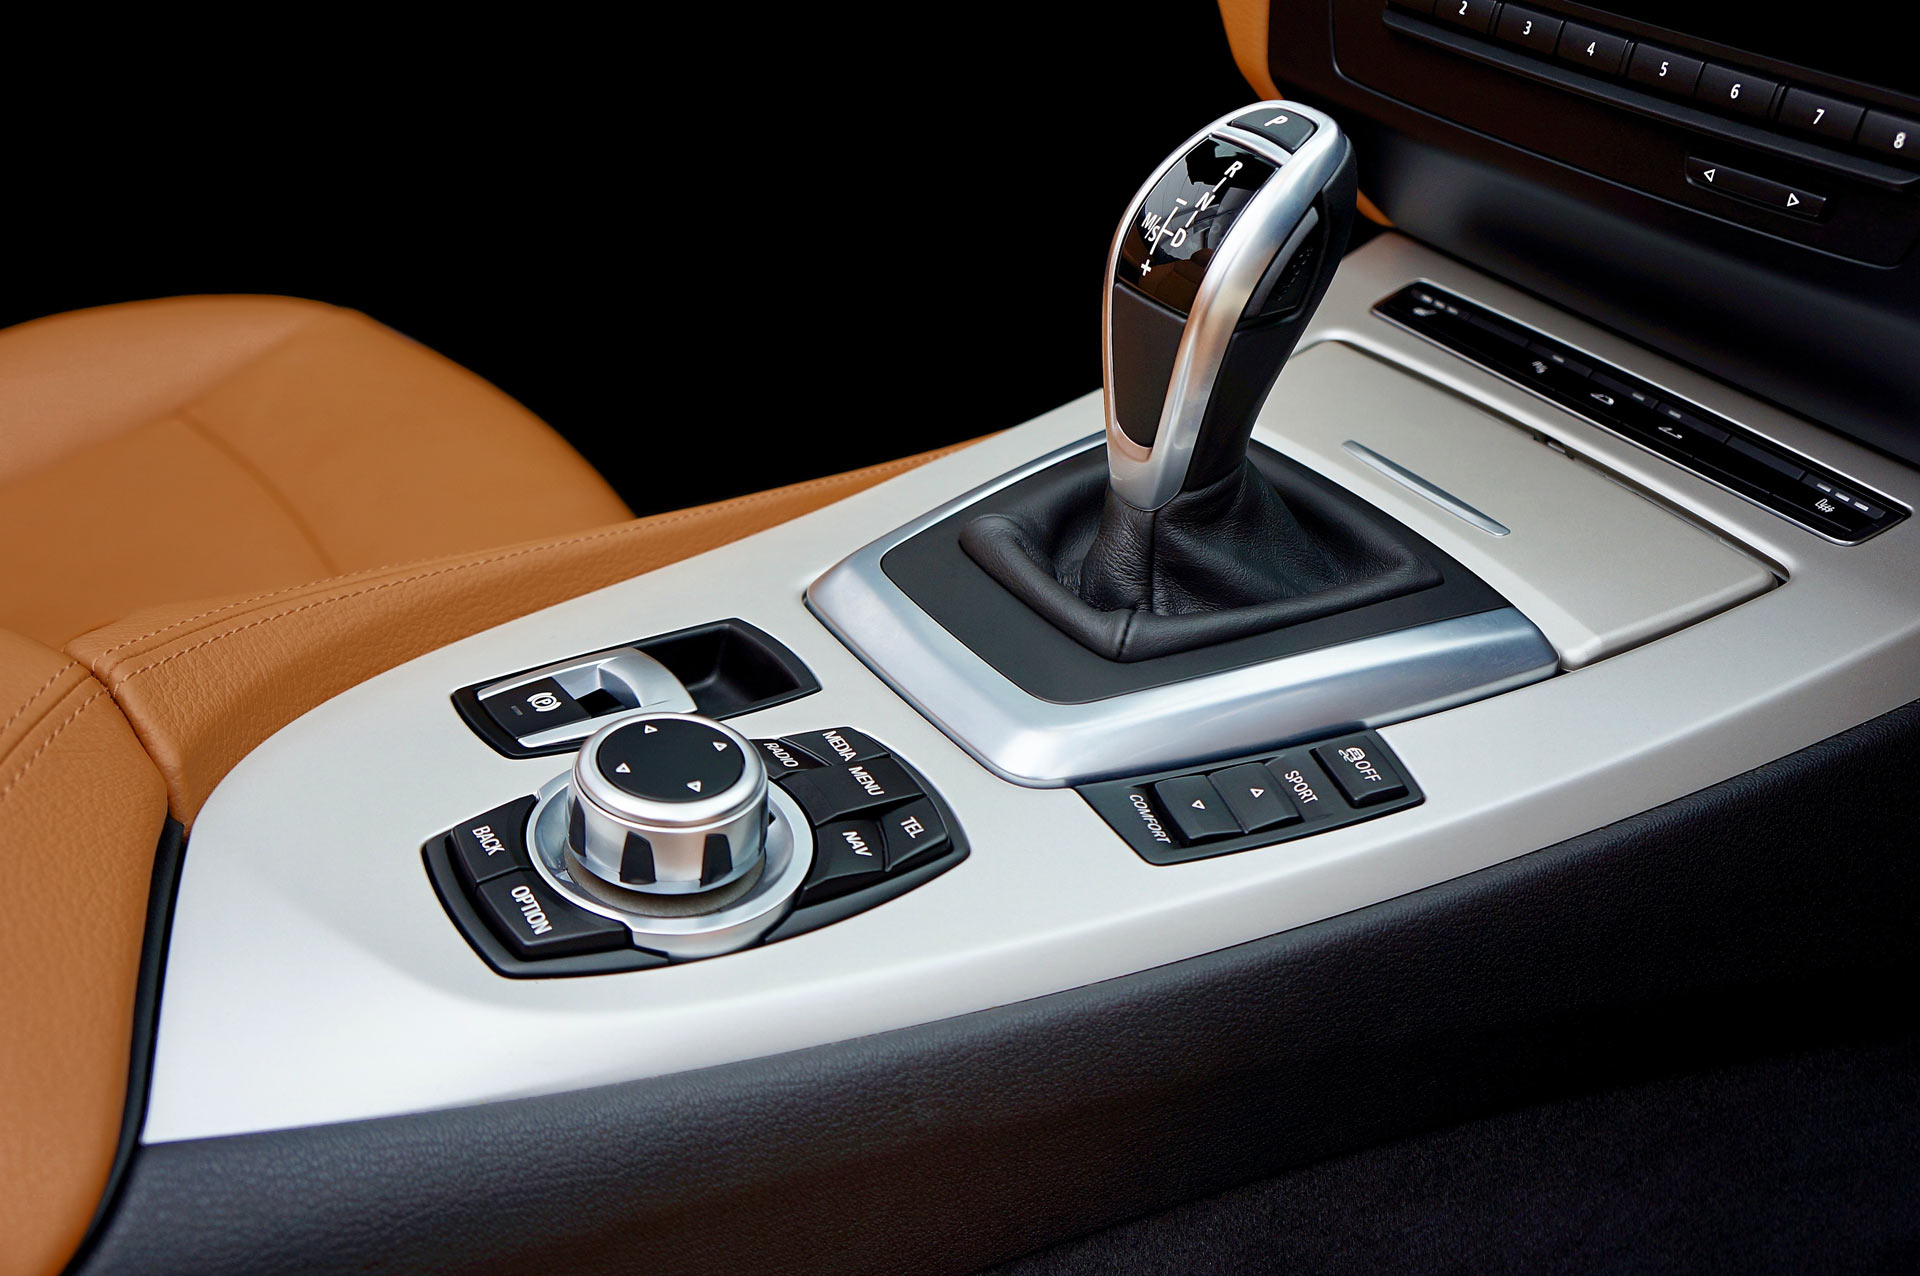 Close up of vehicle gear stick with control options